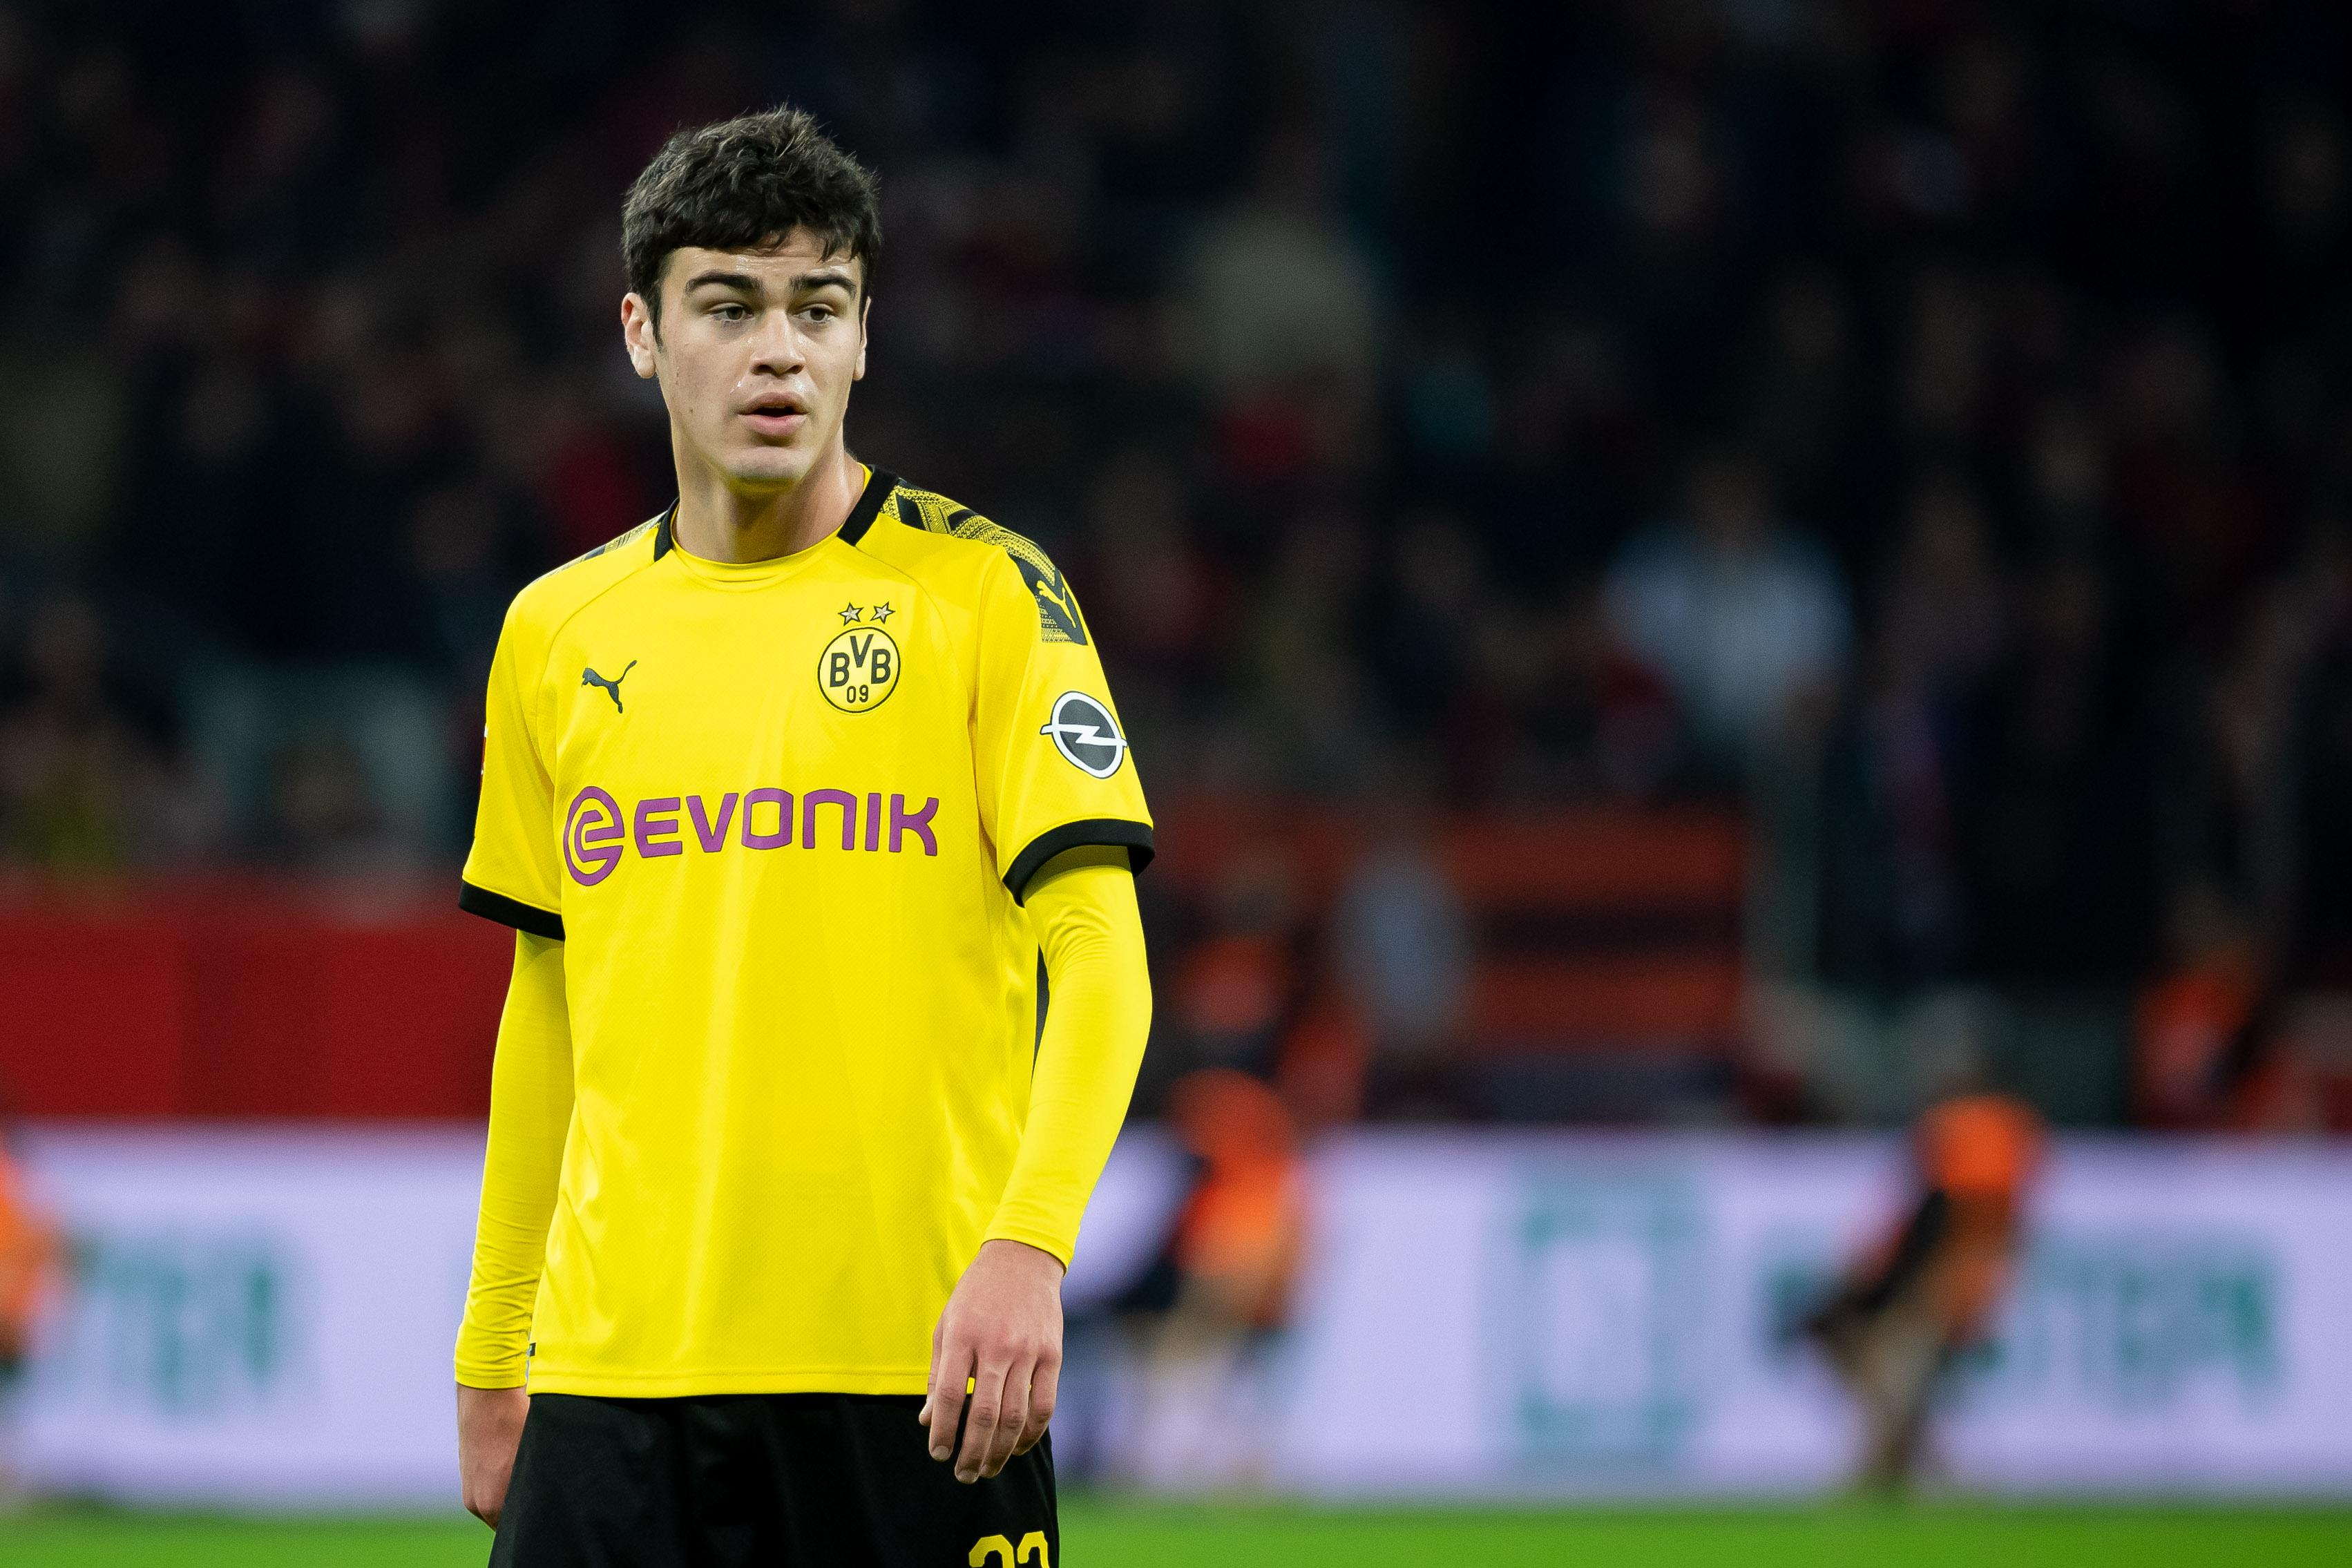 Bundesliga Usmnt S Gio Reyna Injured For Borussia Dortmund